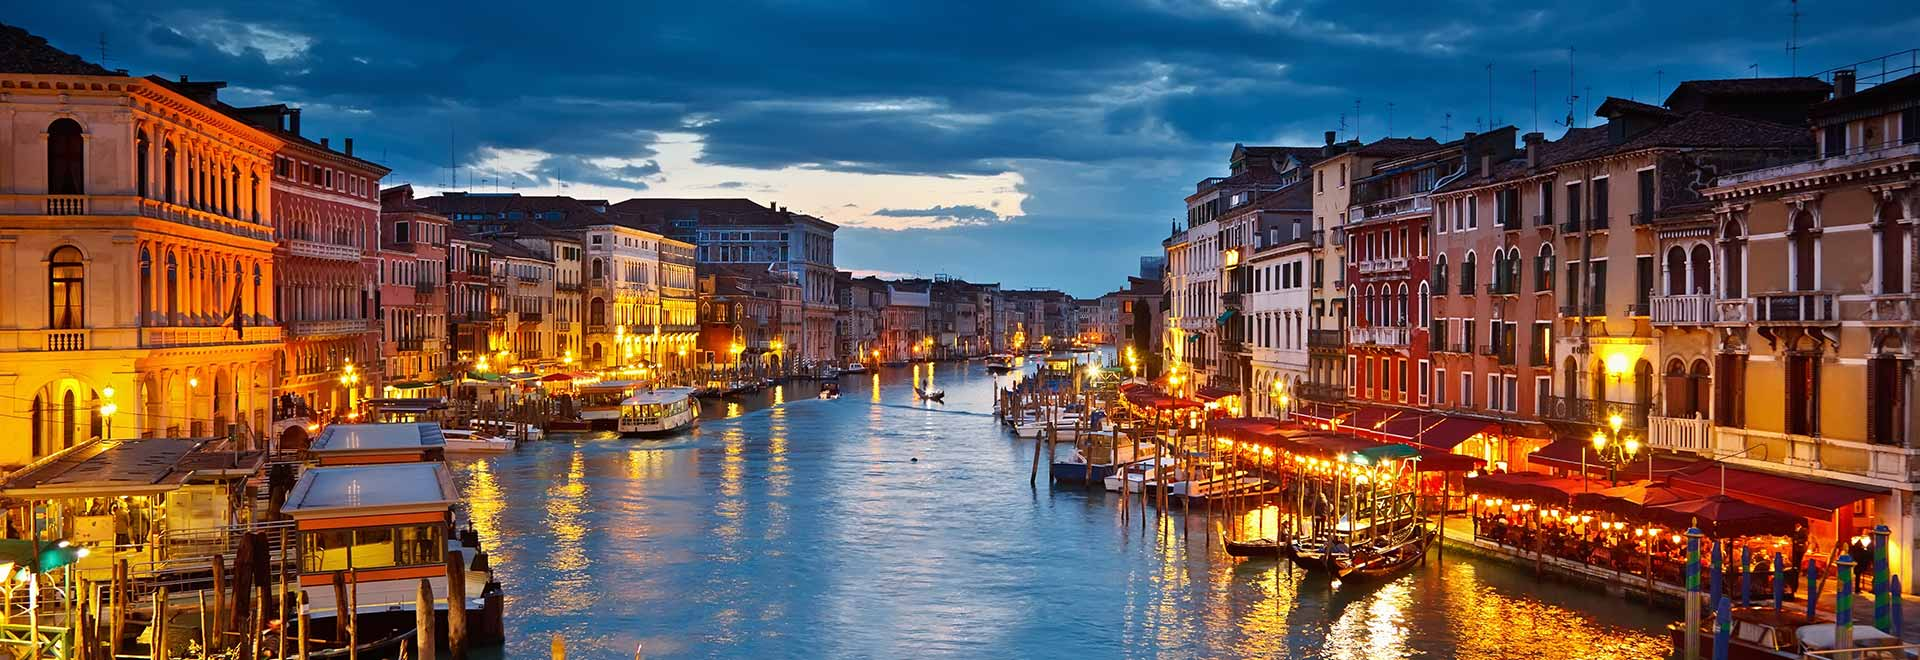 See Venice Private Tours